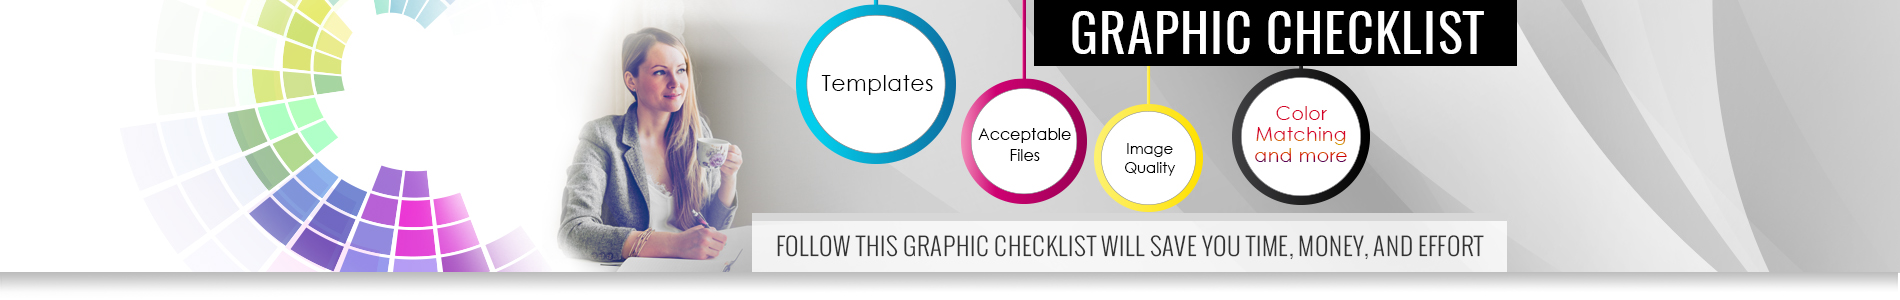 Graphic Checklist